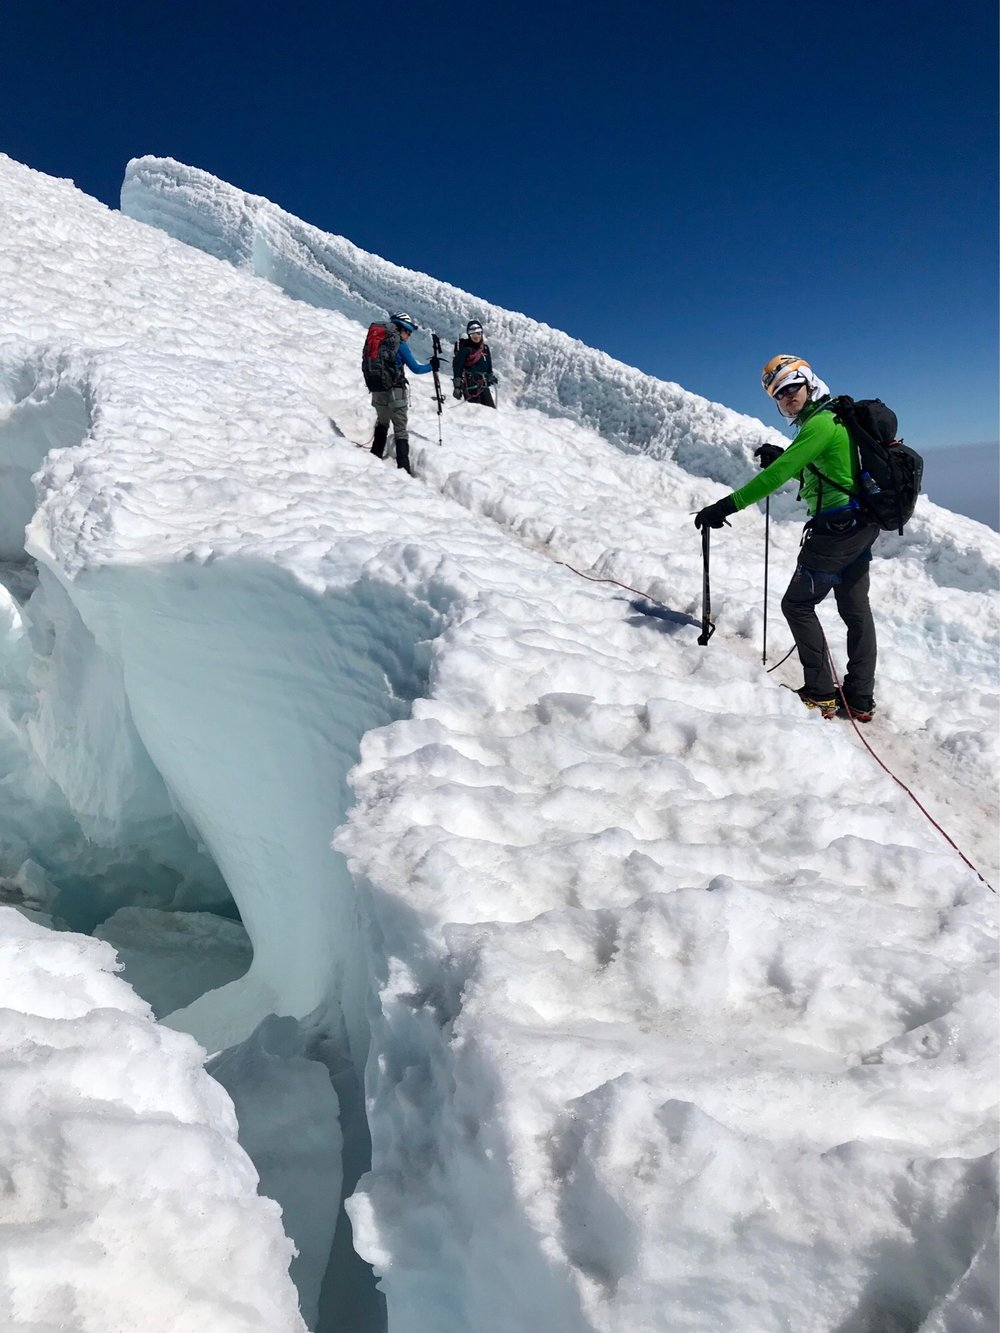 Liam stands next to a massive crevasse on Mount Rainier.